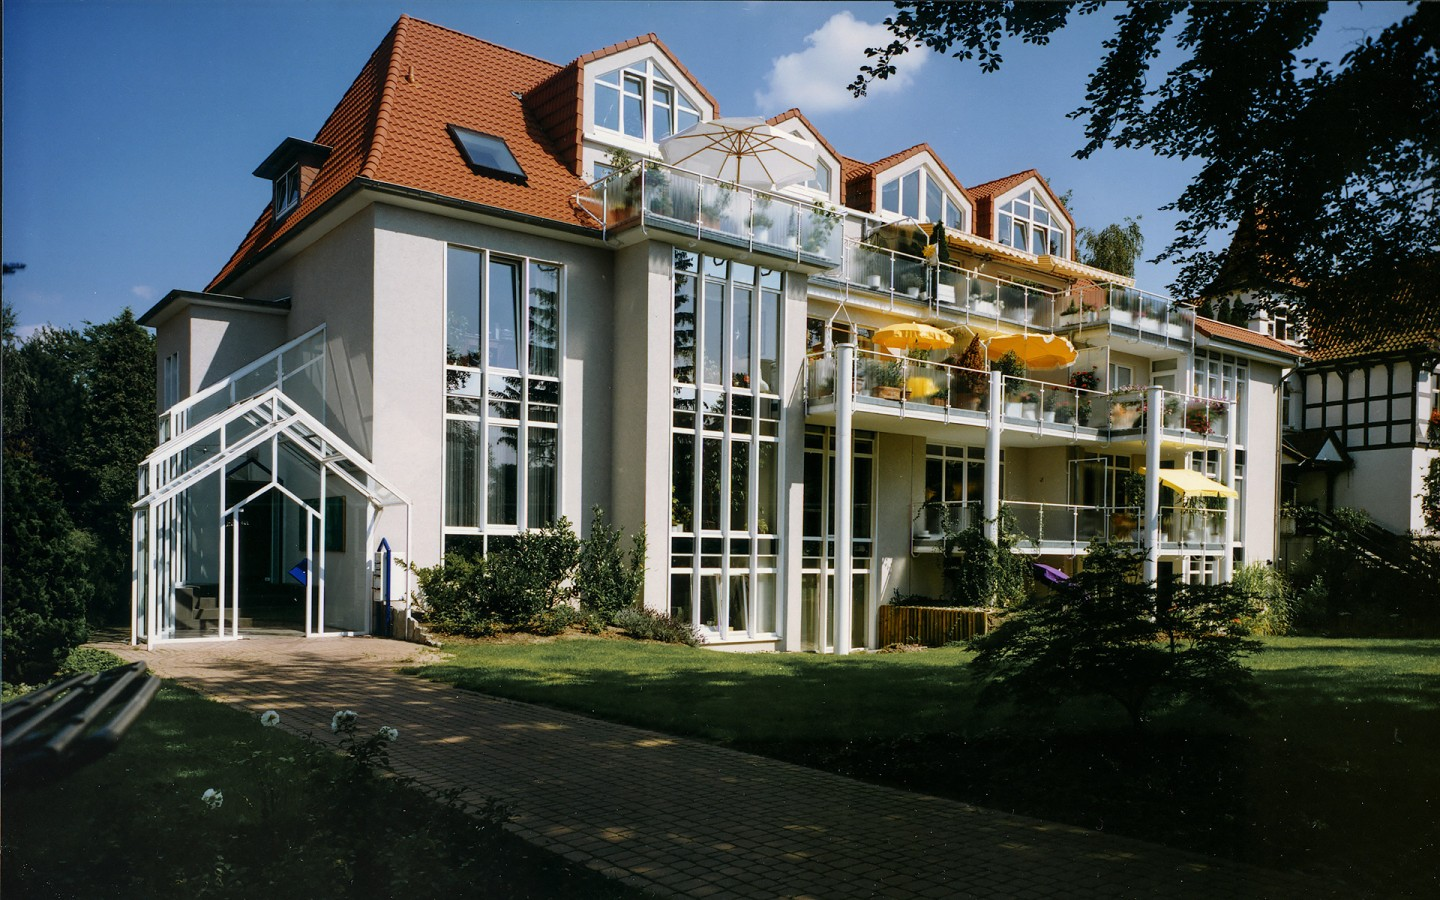 Büro Architekten Jung